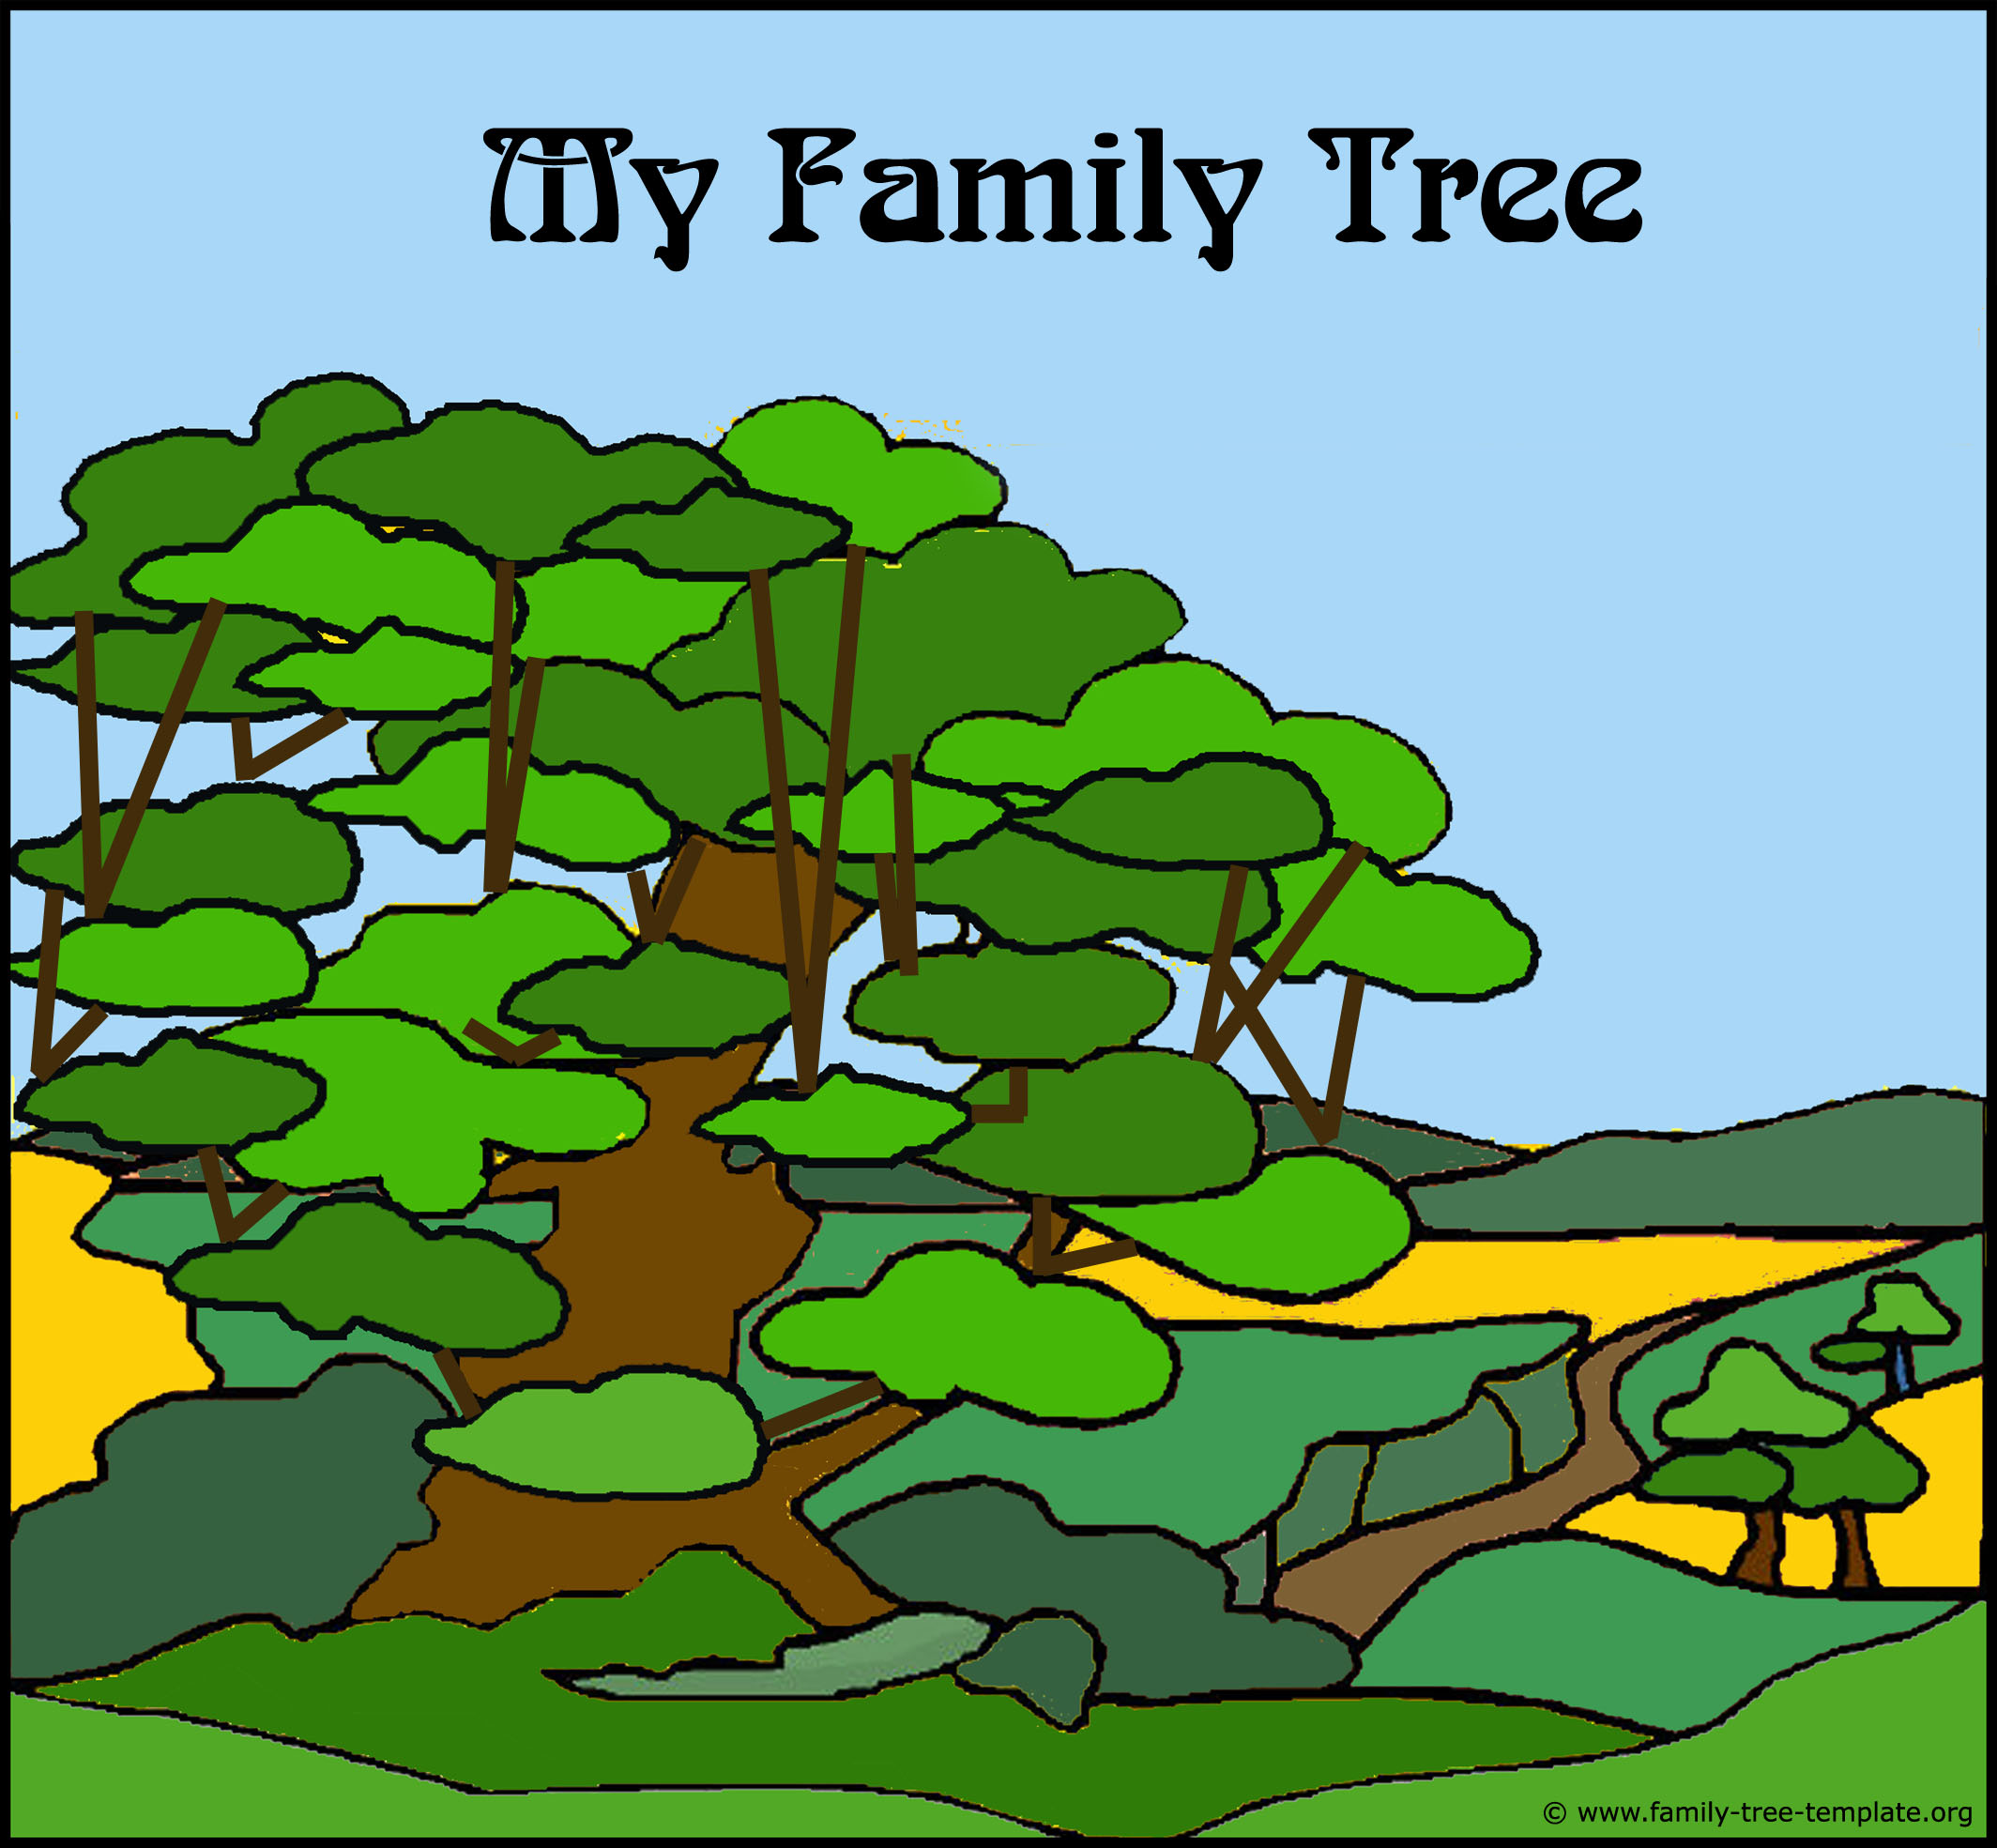 Puzzling family tree form for kids to plot in their relatives all the way back to their great grandparents.